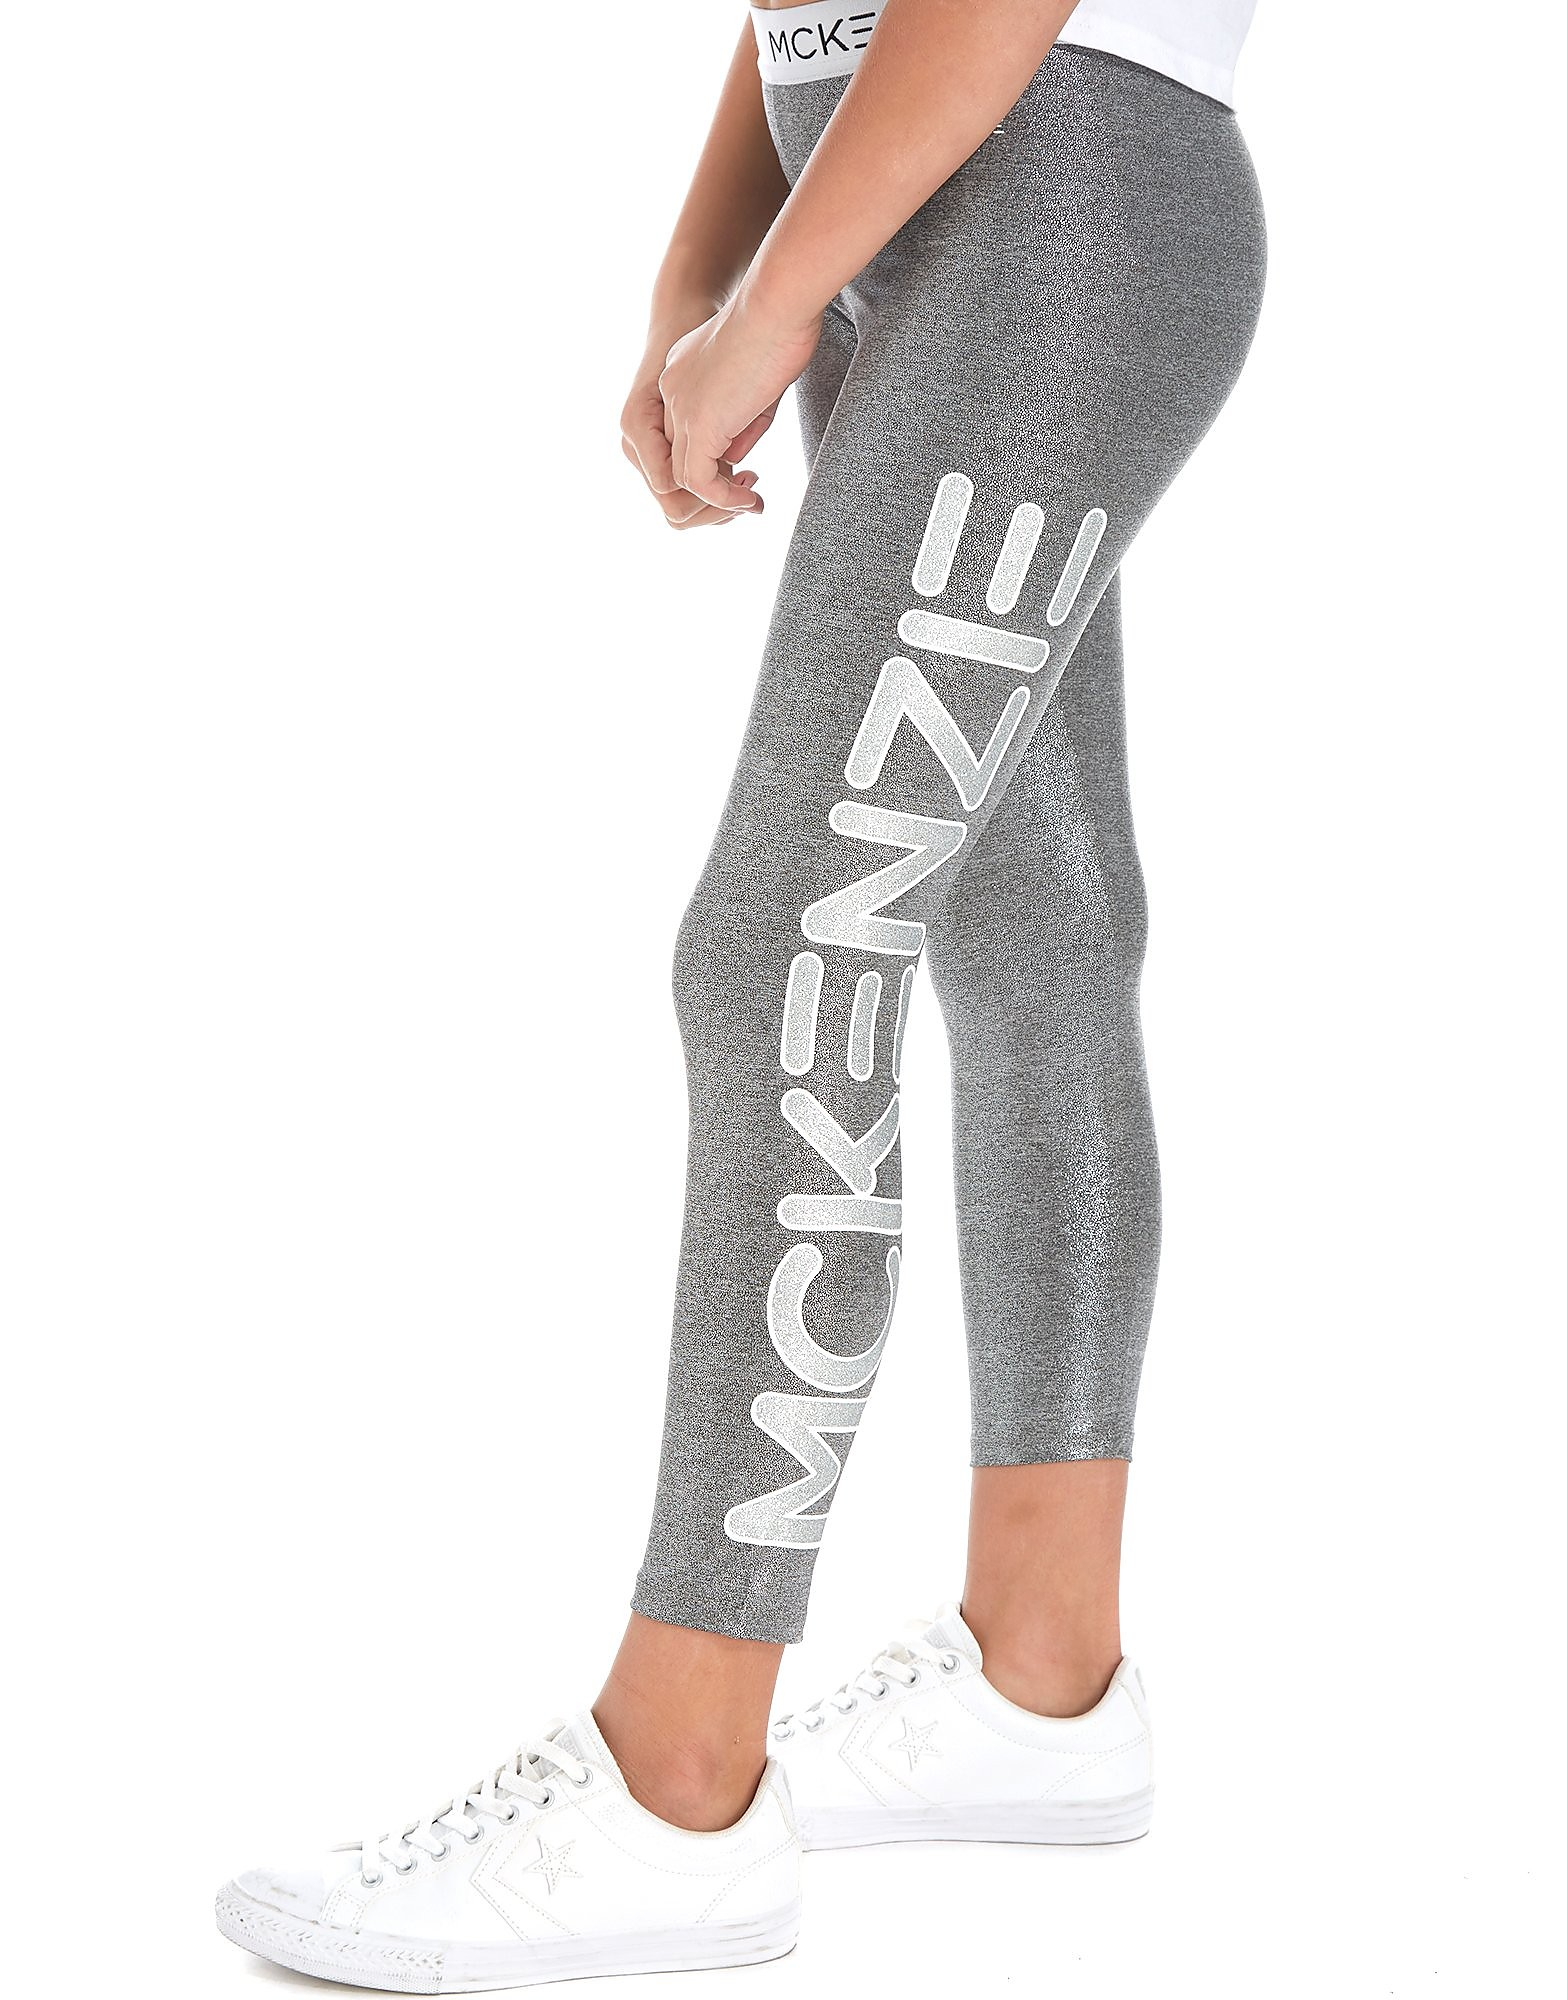 McKenzie Leggings Honey Junior